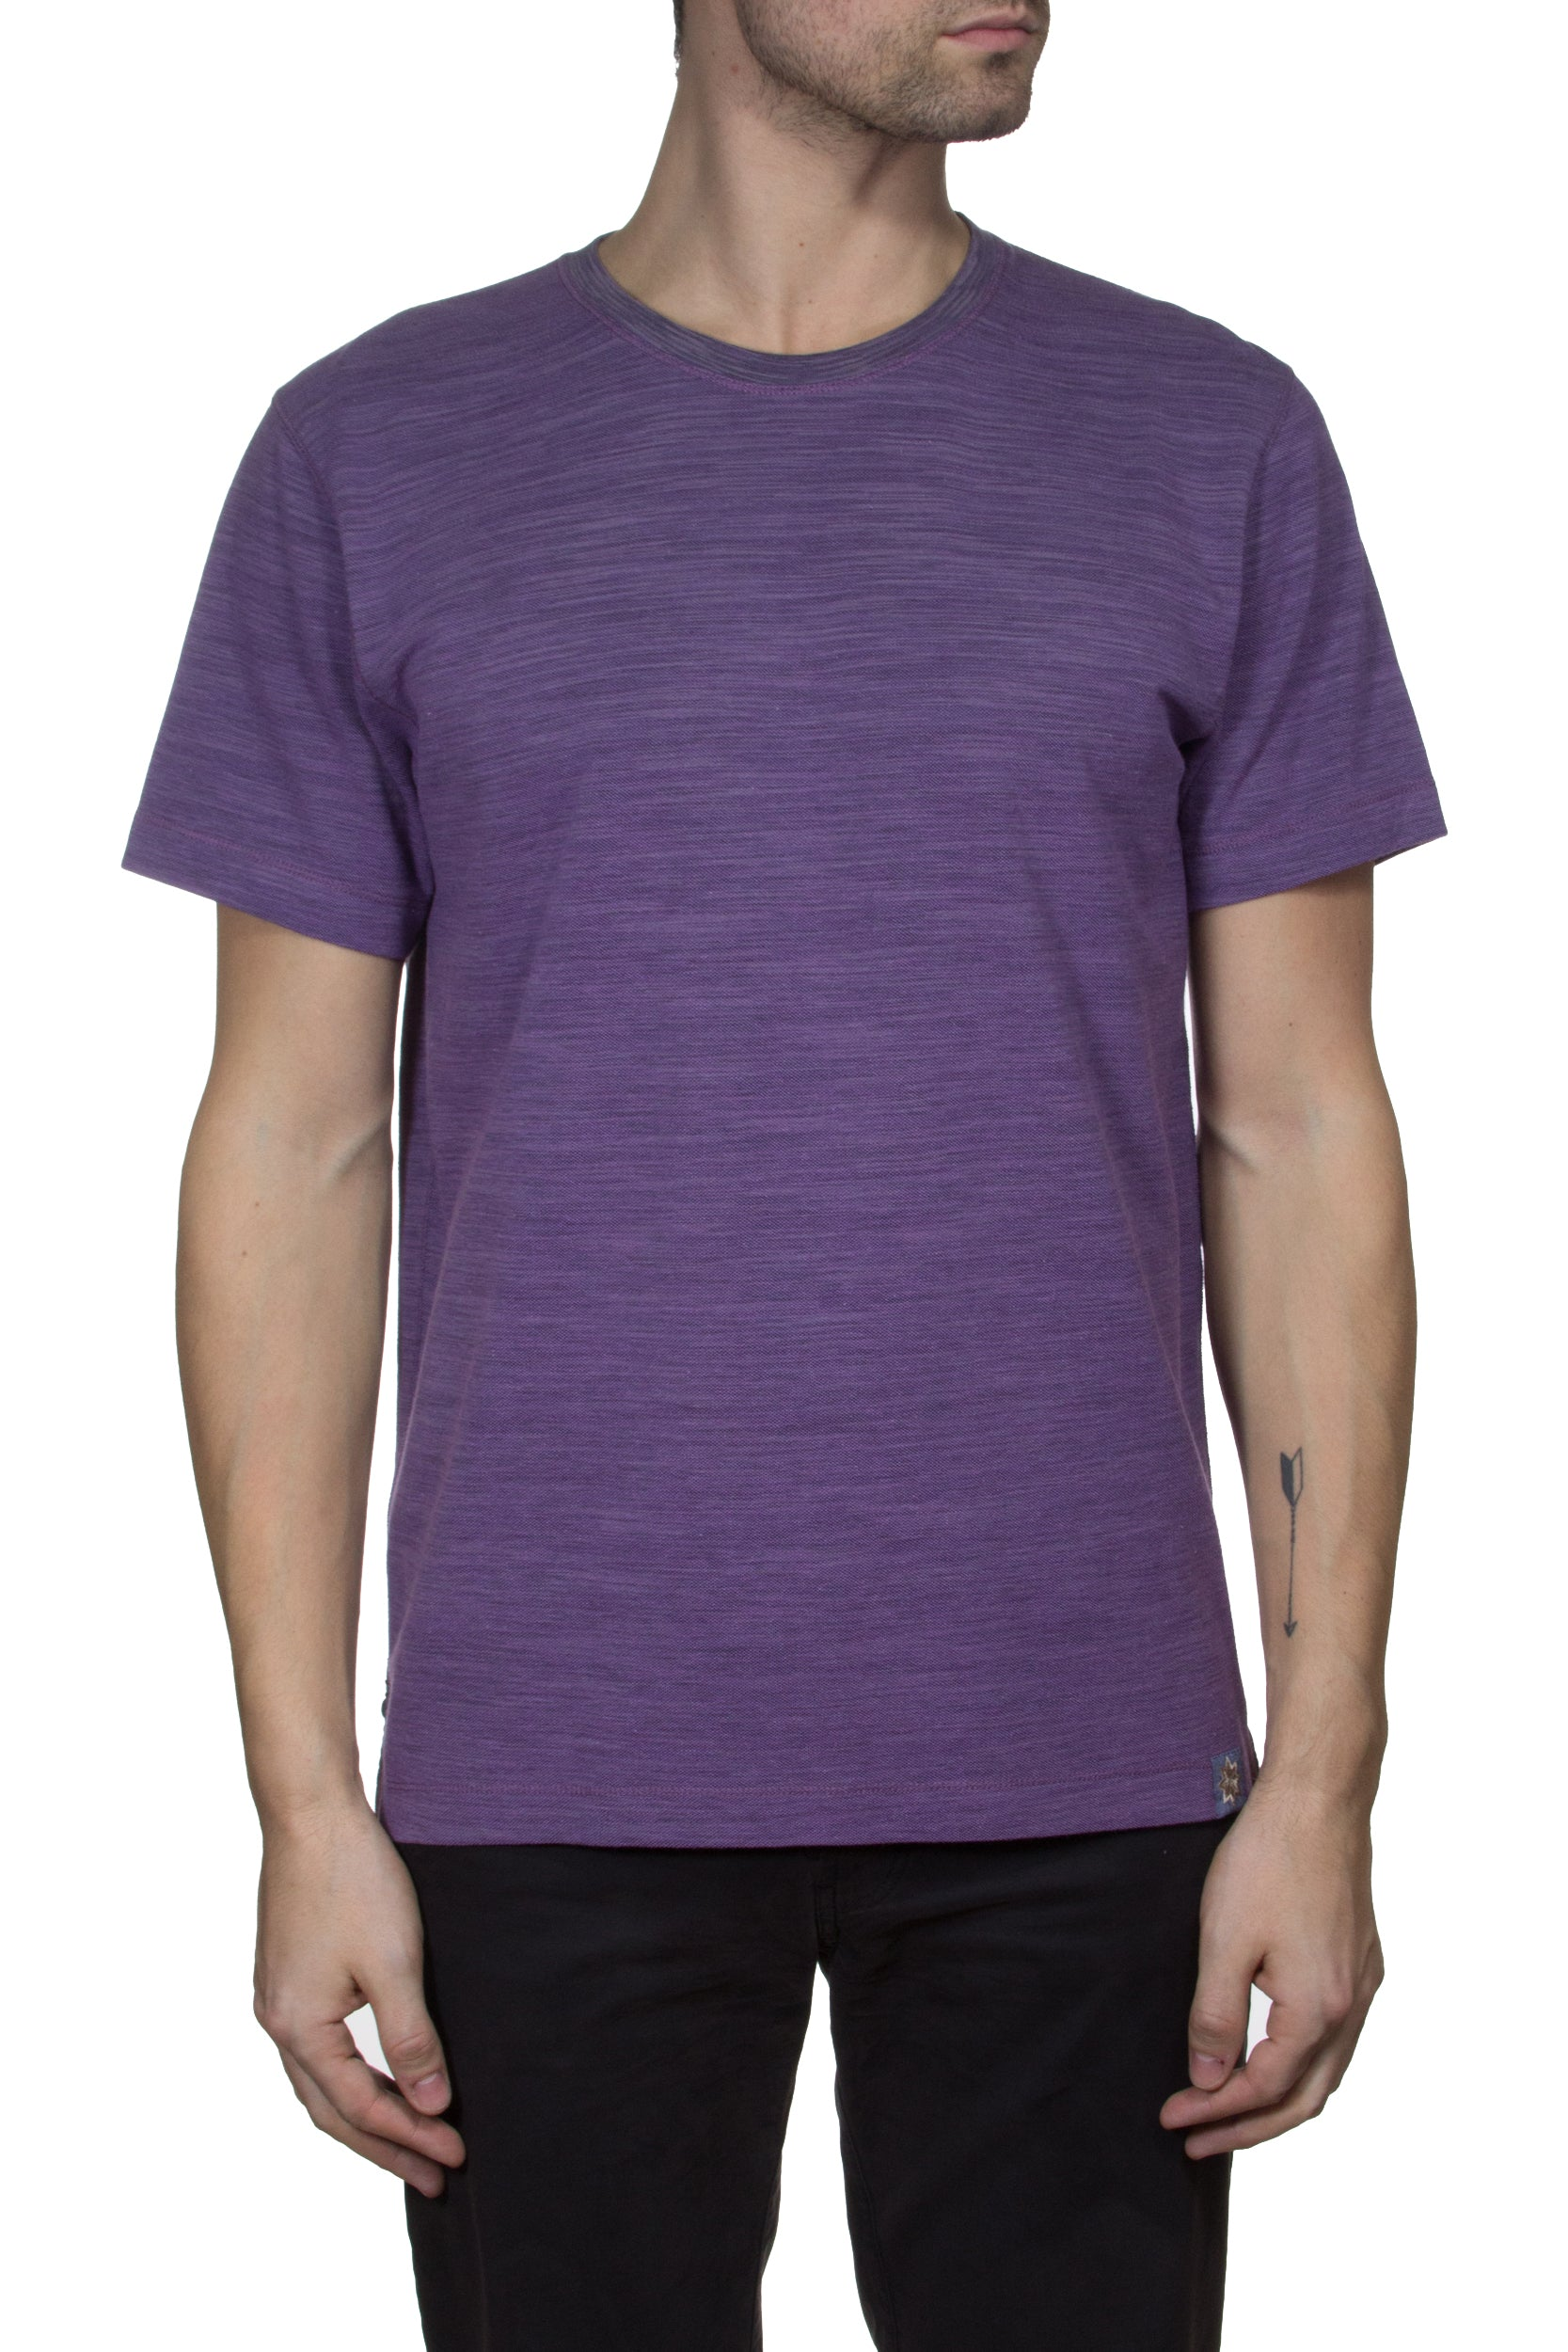 Thaddeus PAXTON Space Dyed Cotton Pique Crew Neck